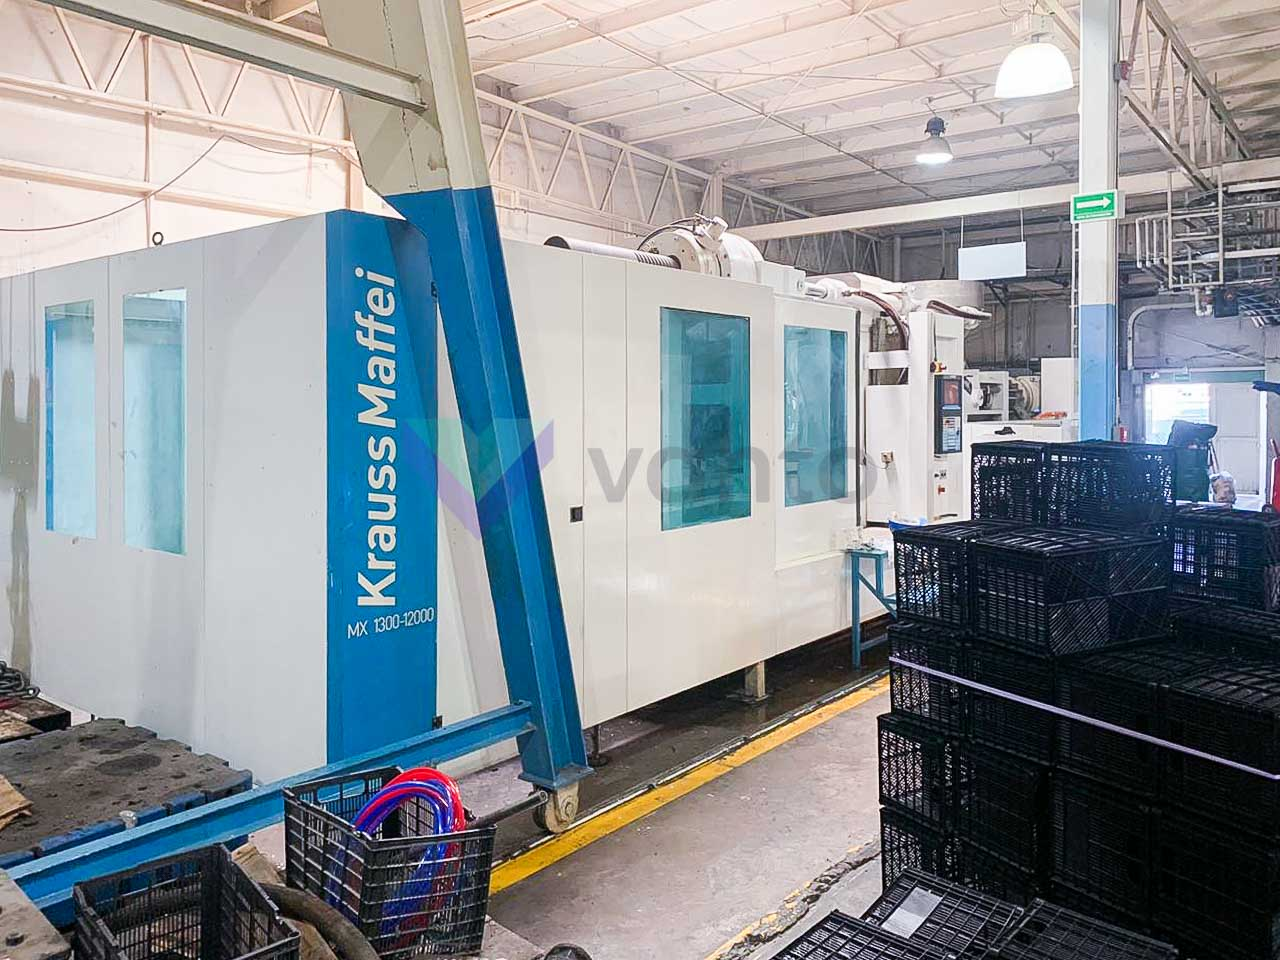 KRAUSS MAFFEI KM 1300-12000 MX Injection molding machine 1300t (2010) id10364